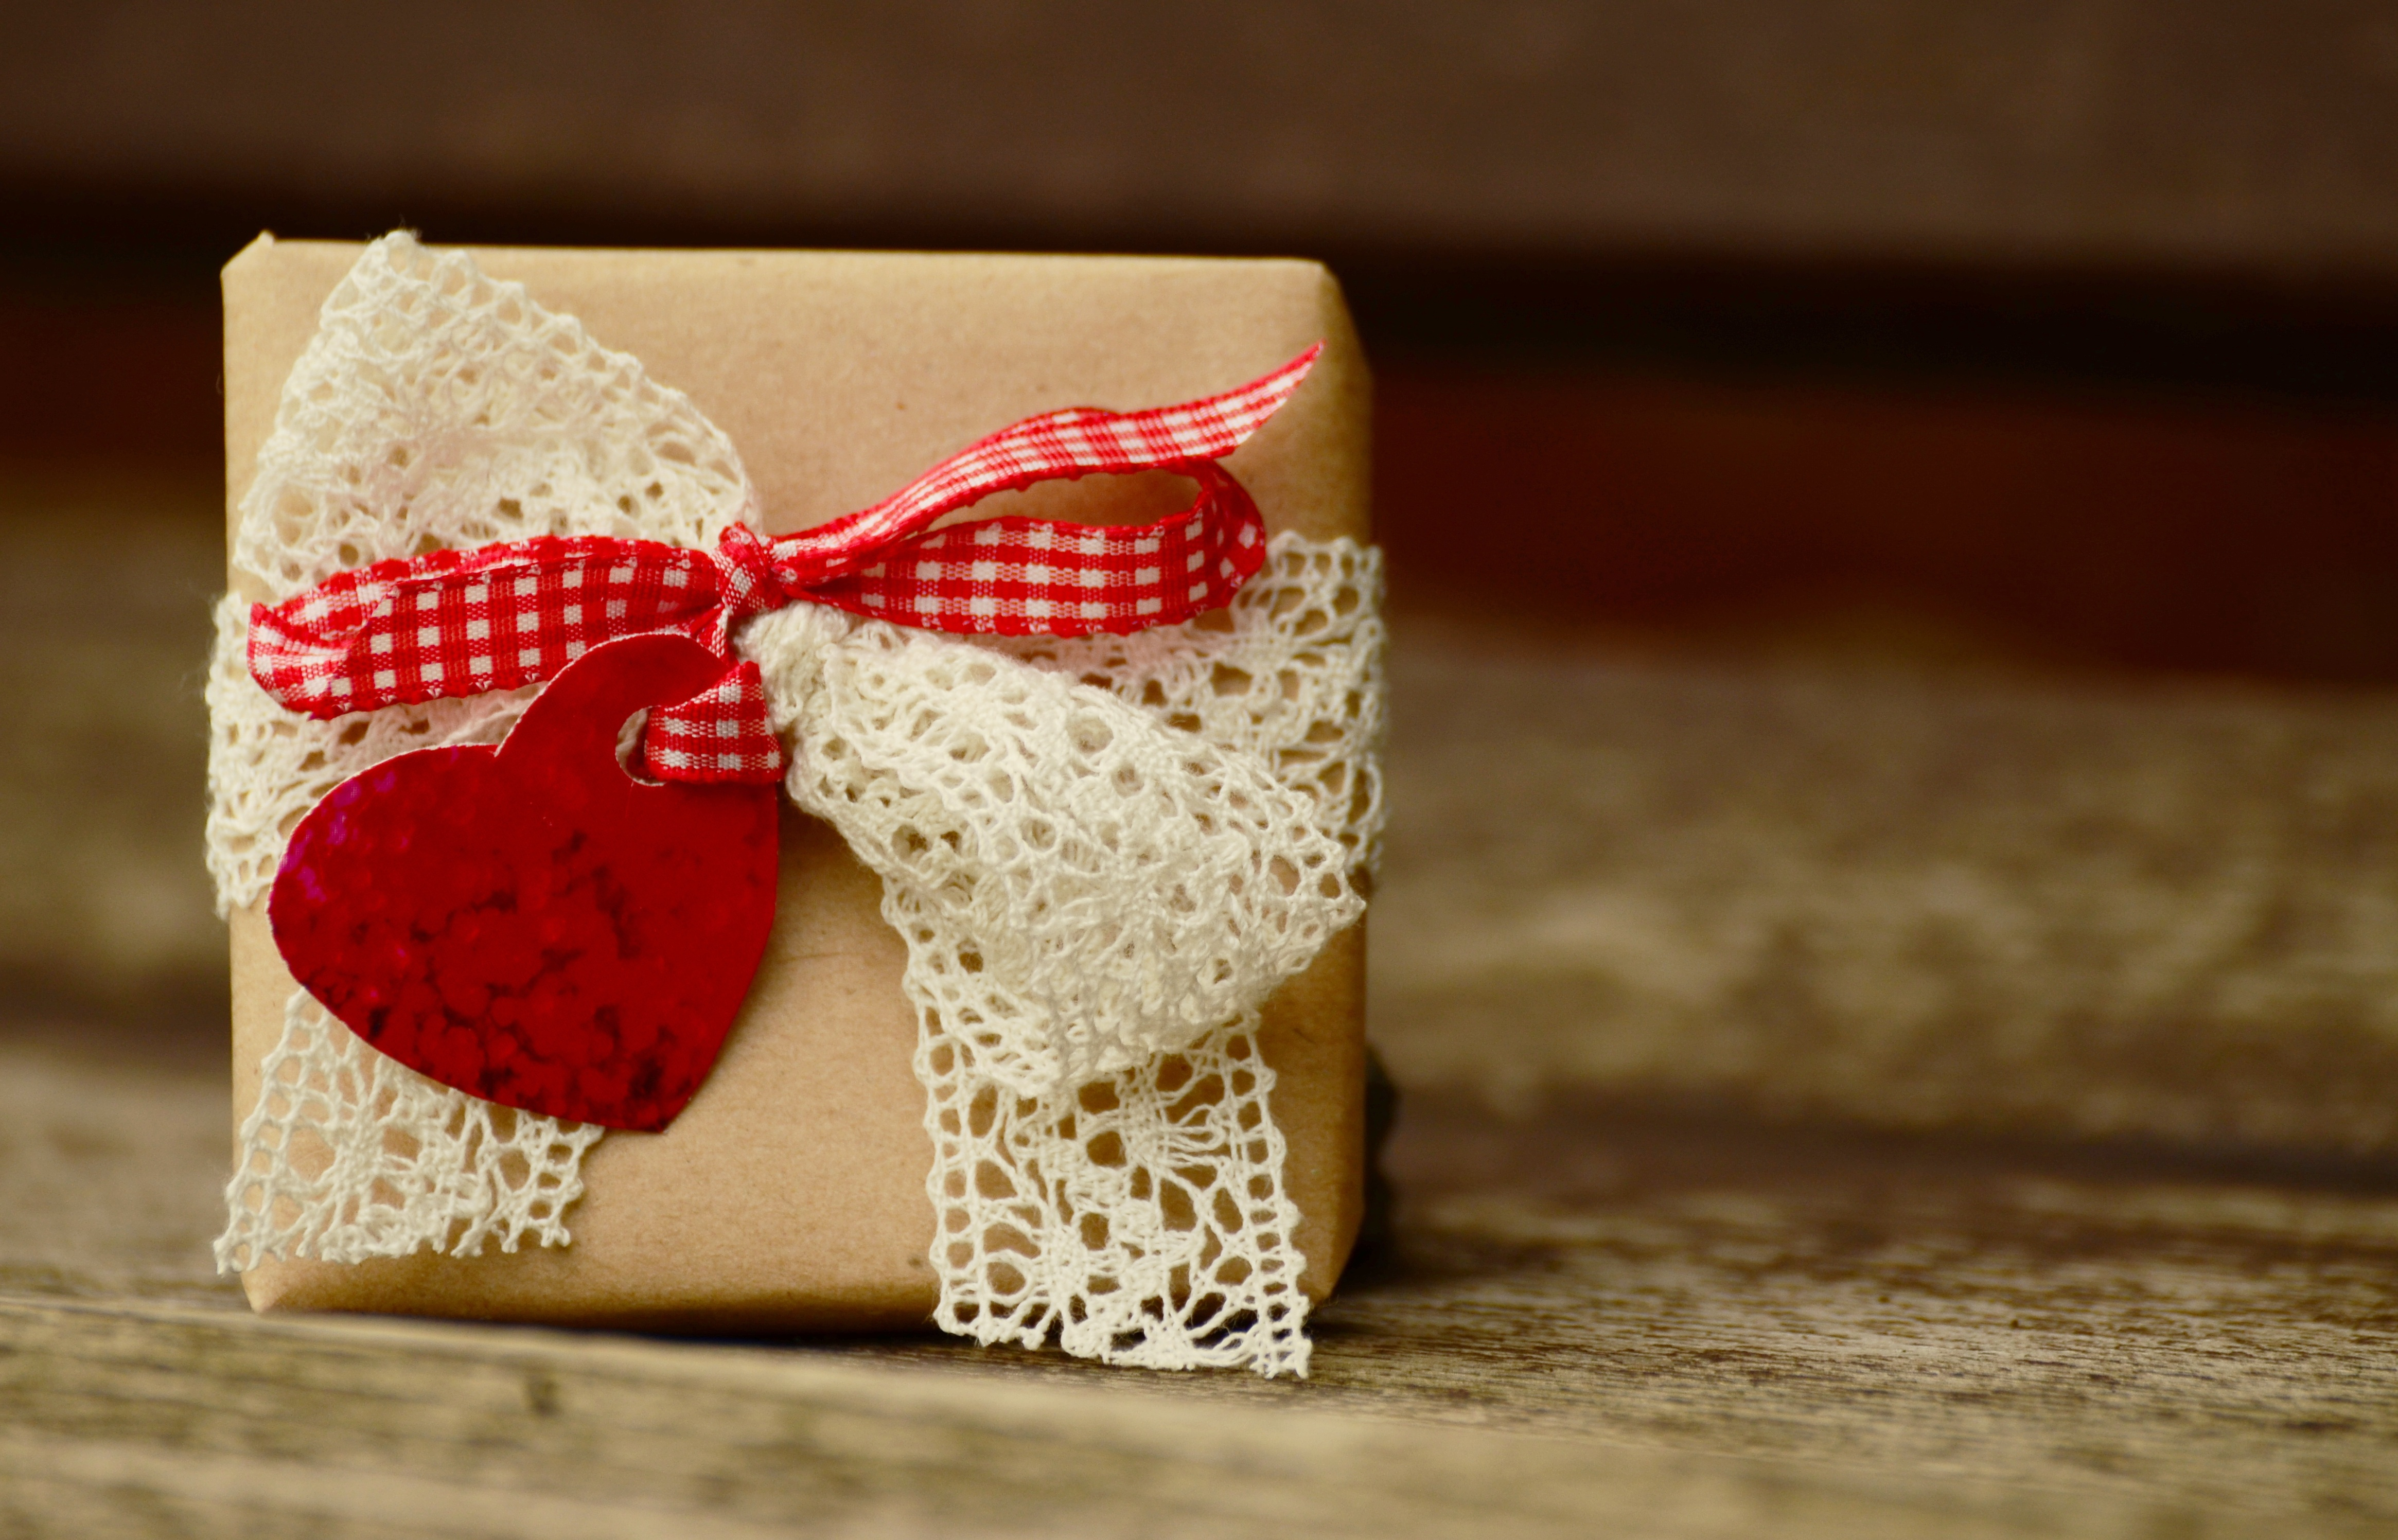 flower-heart-gift-food-happy-birthday-textile-1050892-pxhere.com